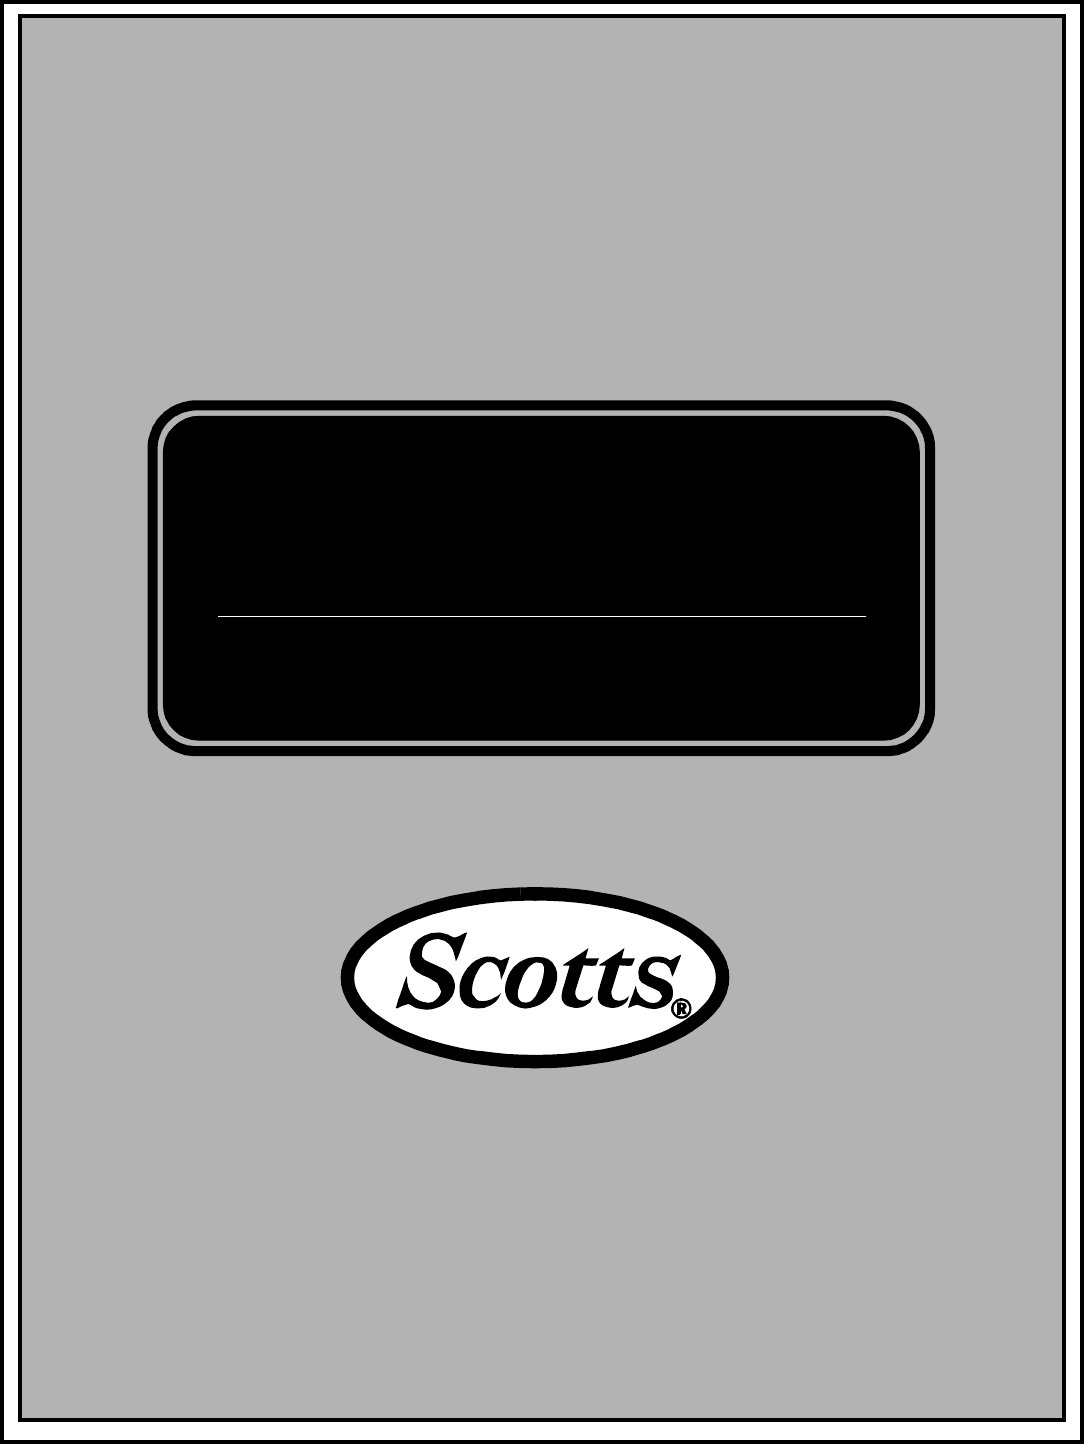 Scotts Lawn Mower S2546 User Guide Manualsonlinecom Wiring Diagram